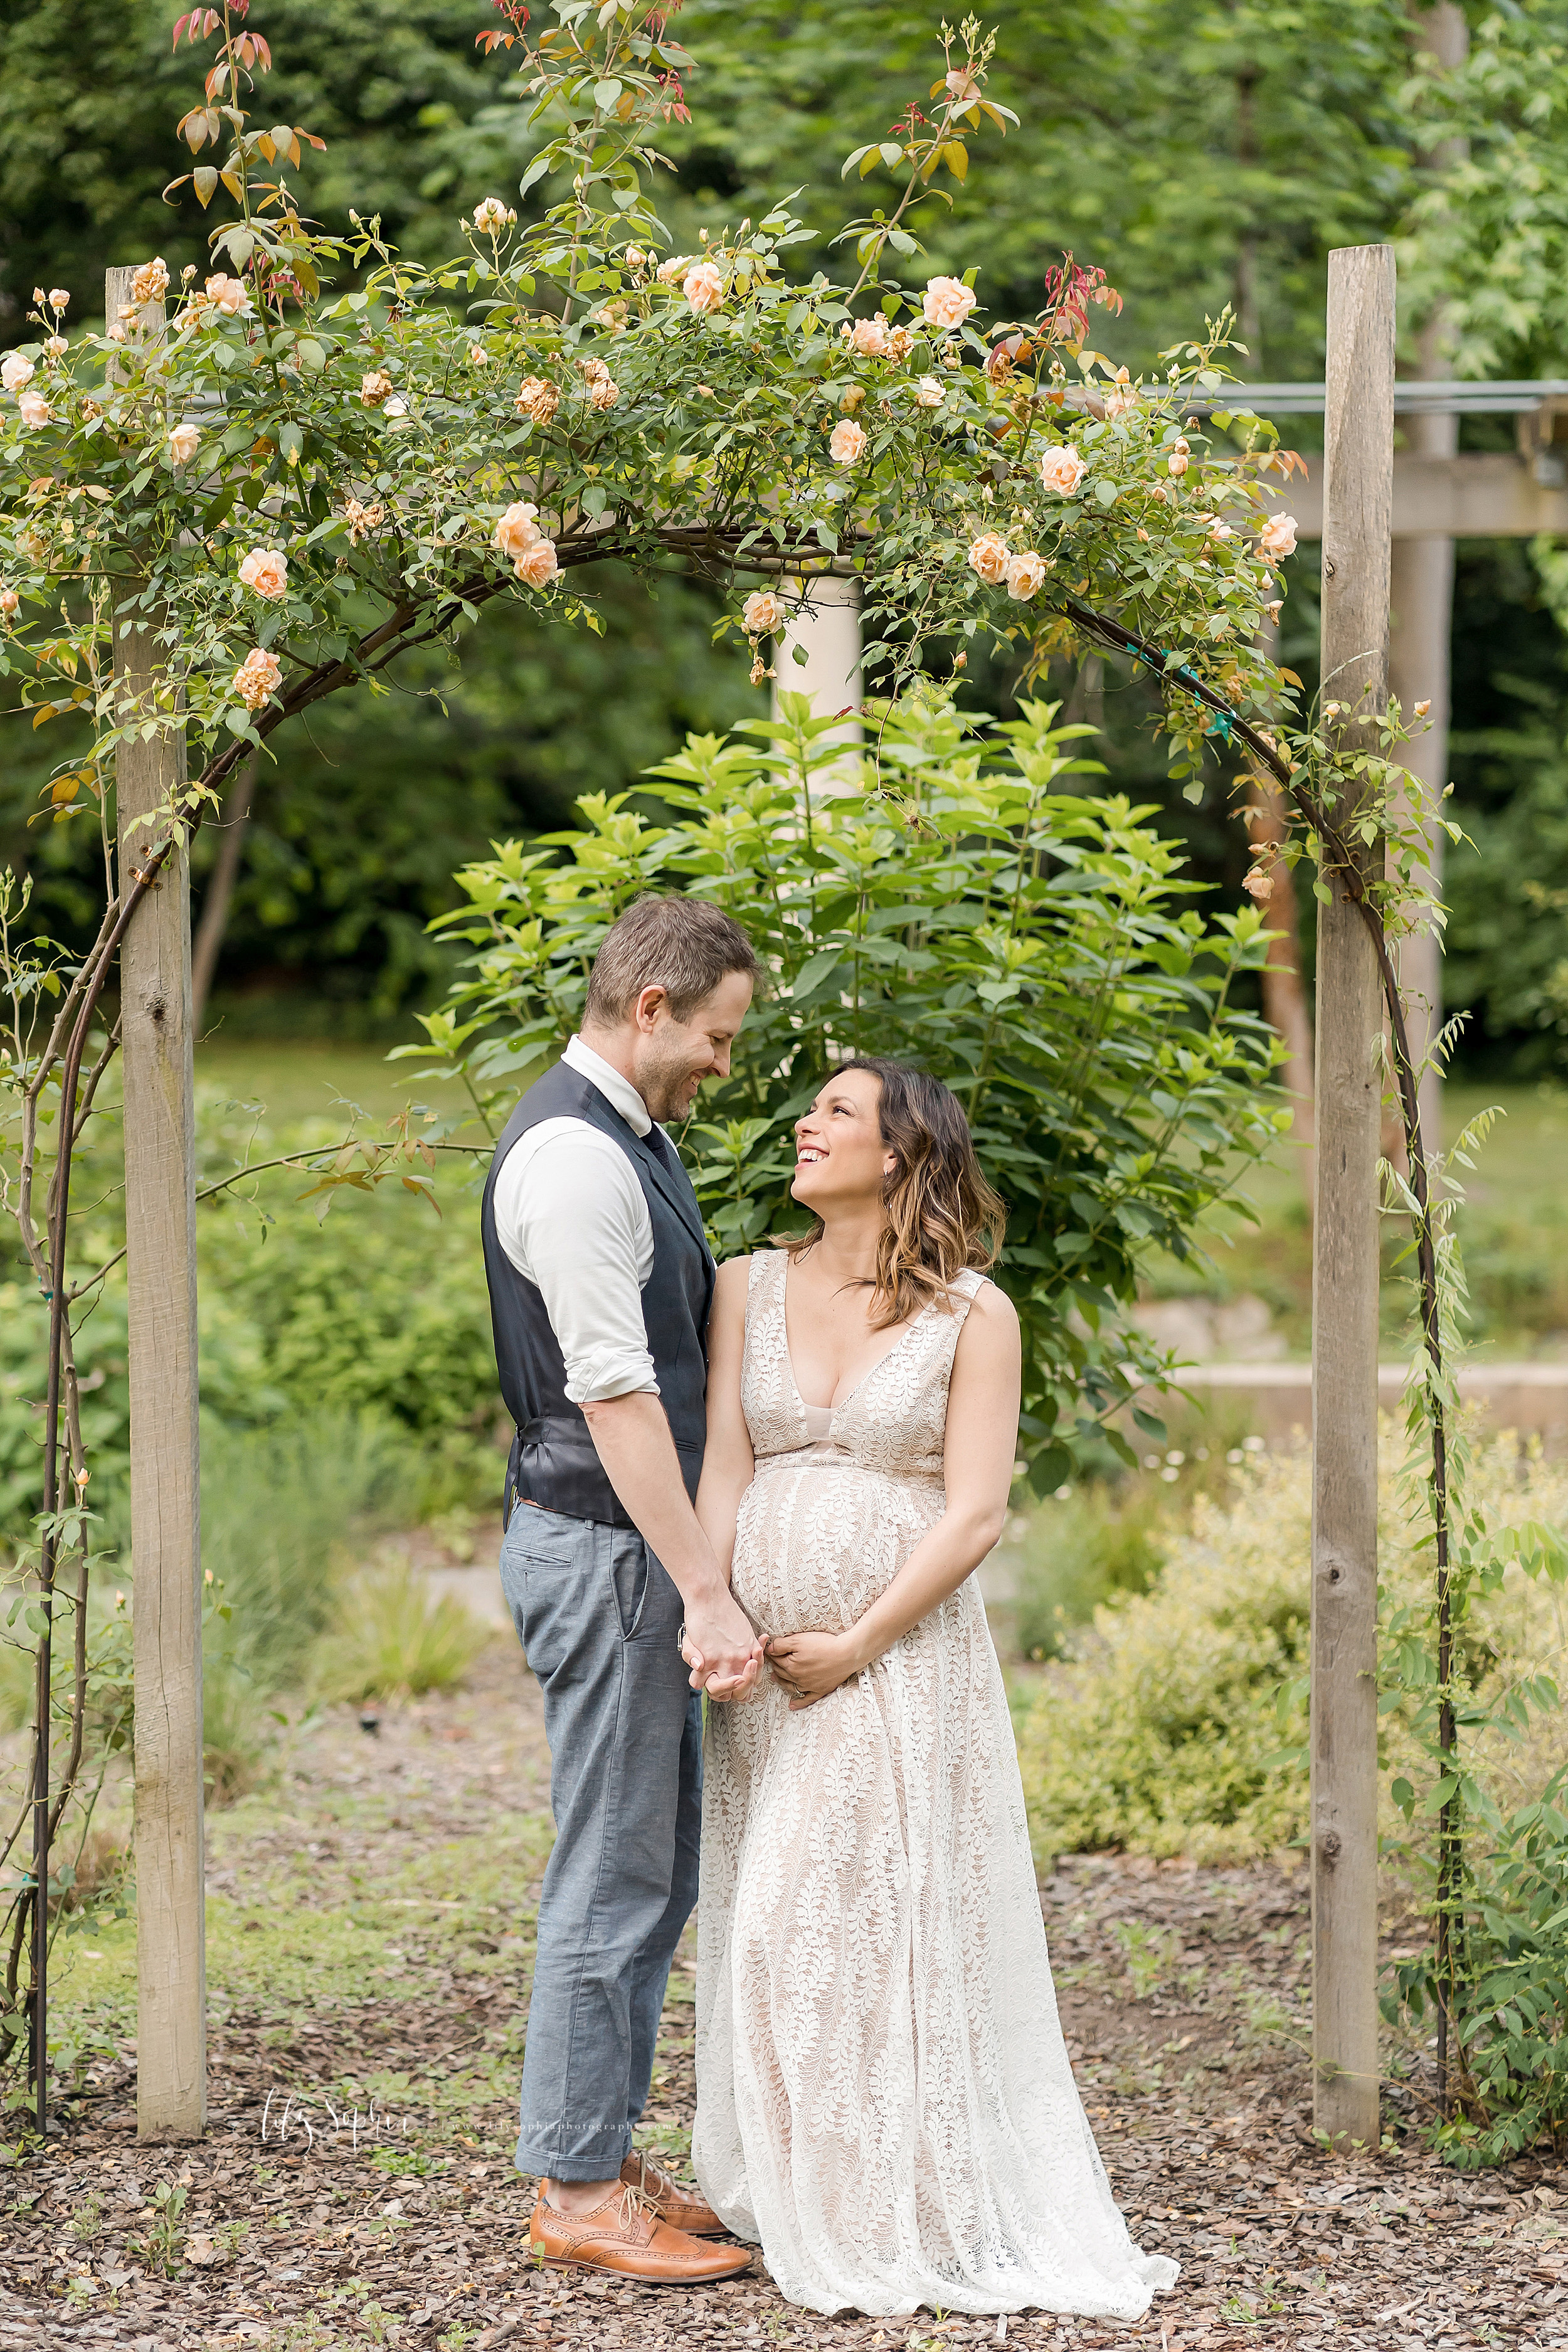 Photo of a pregnant wife with her husband standing and holding hands under an arbor in a garden in Atlanta.